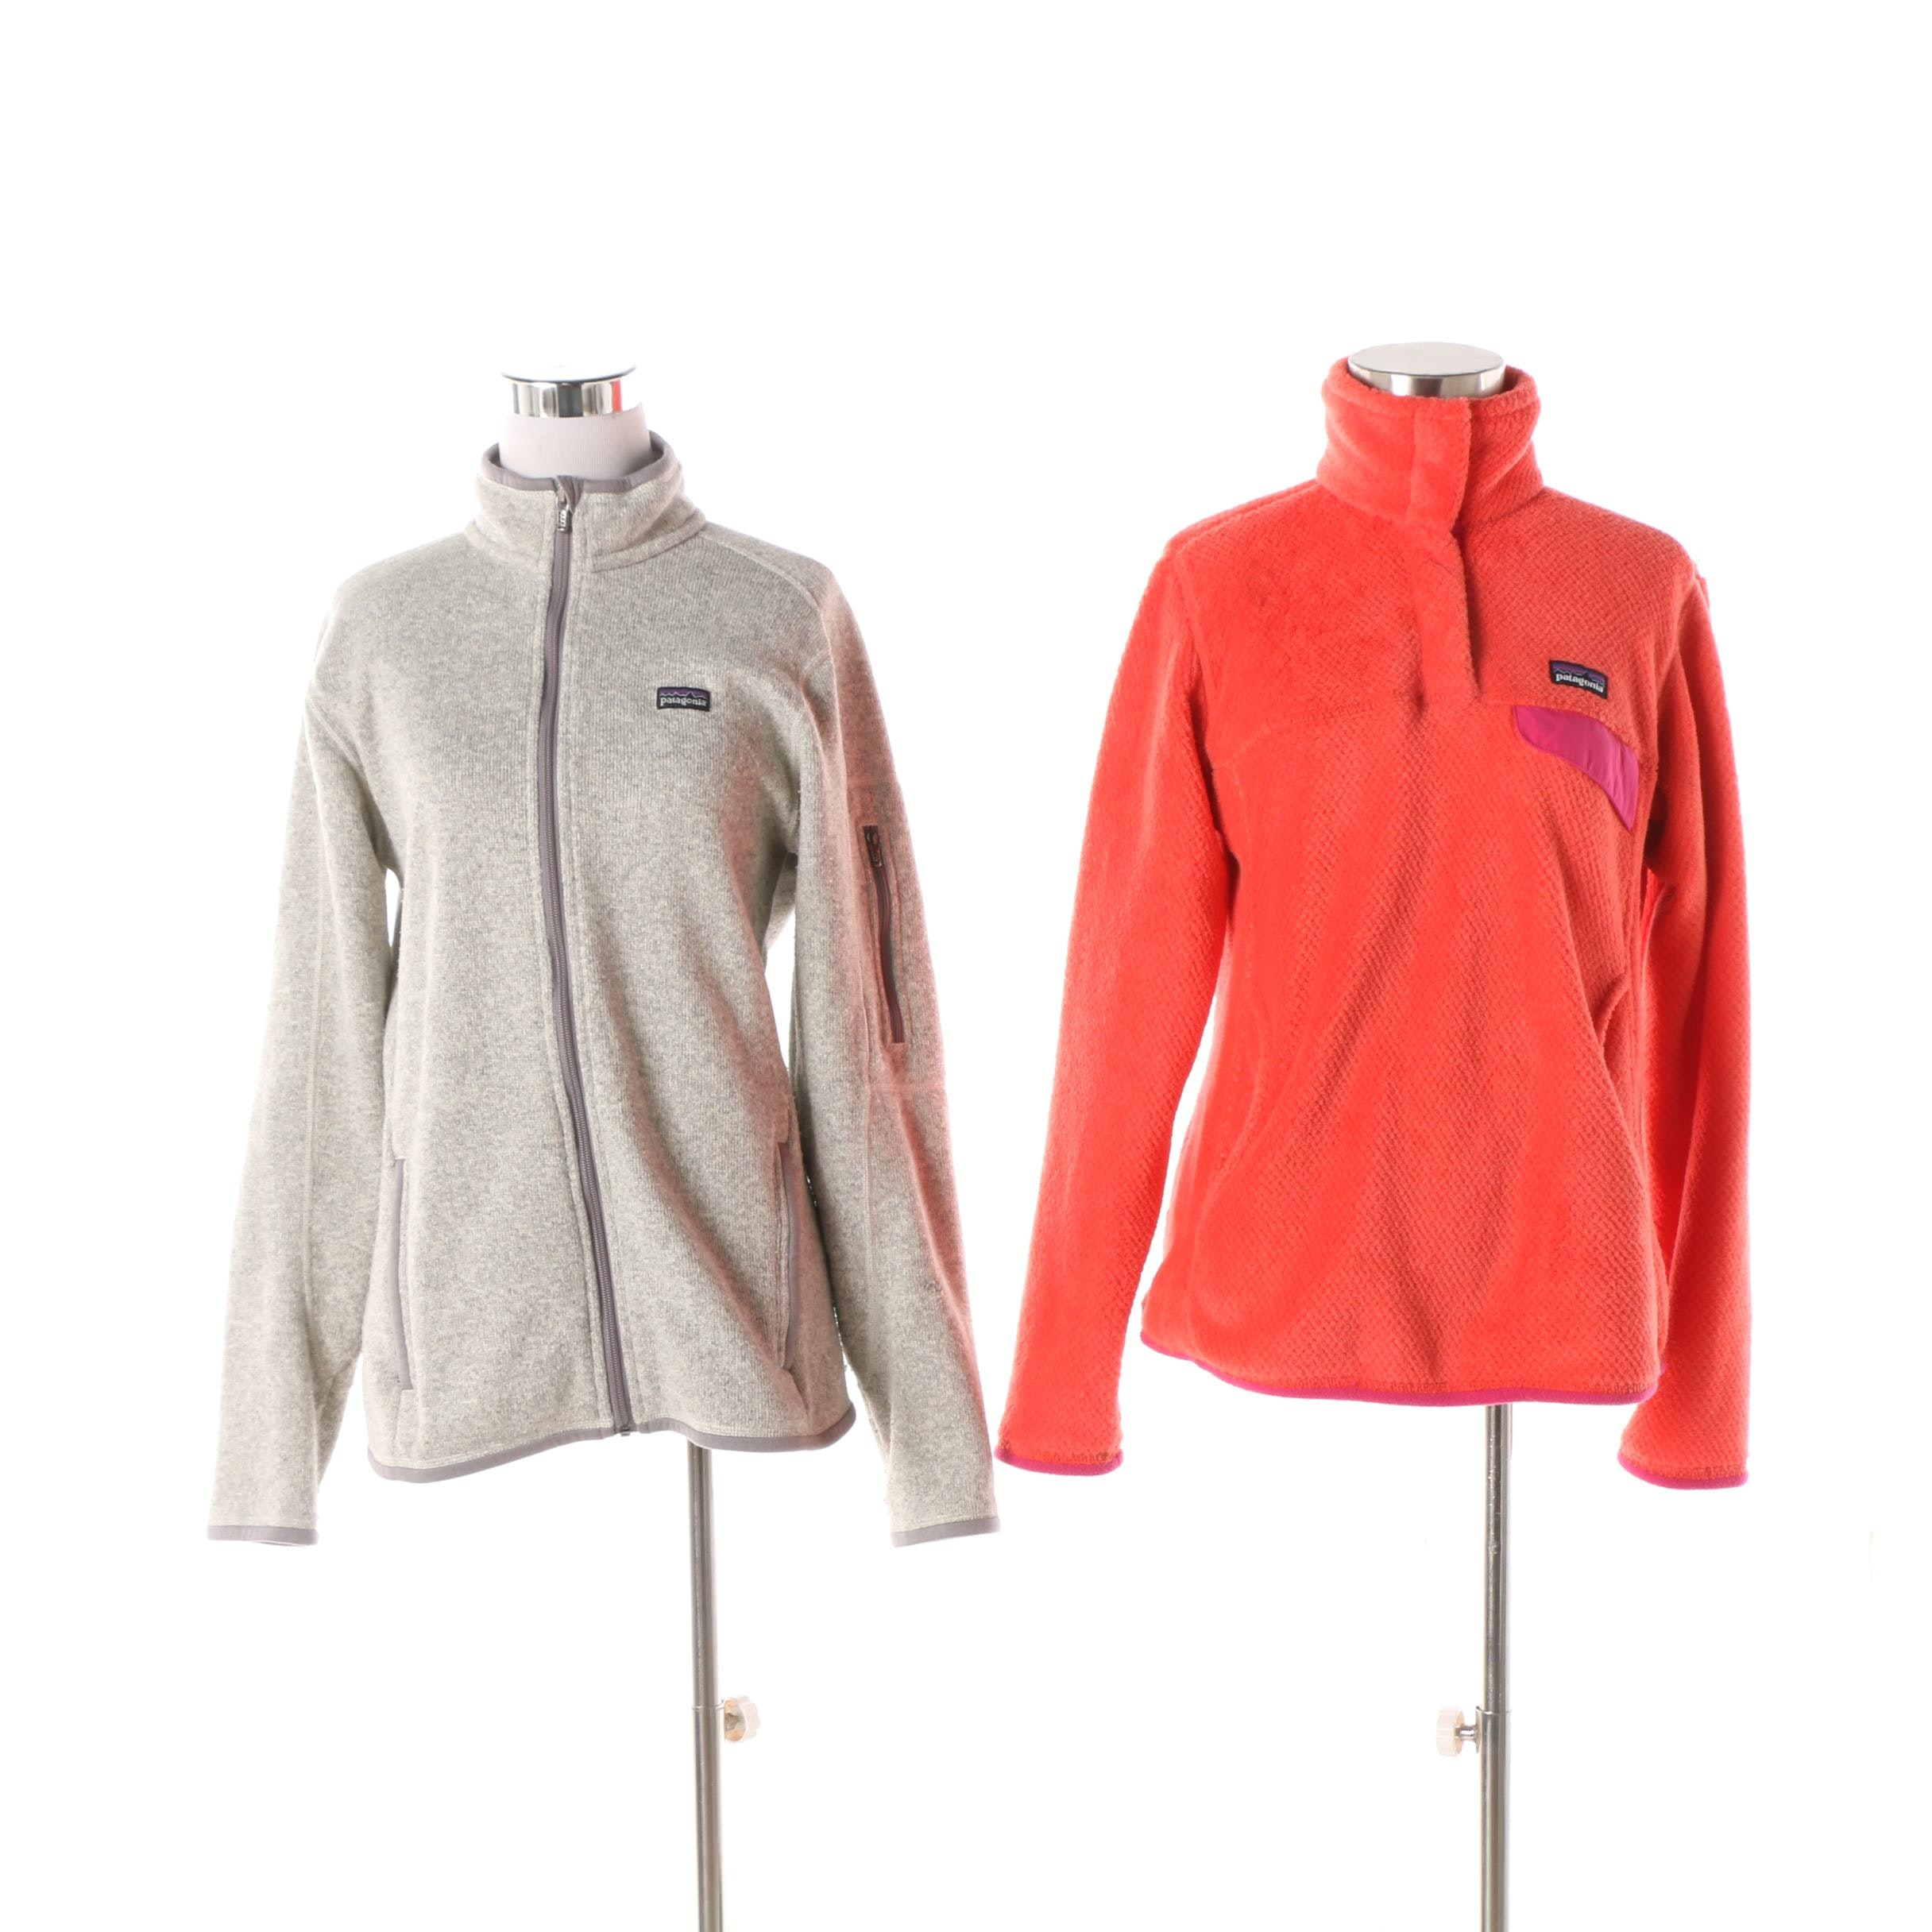 Women's Patagonia Grey Fleece Jacket and Orange Pullover